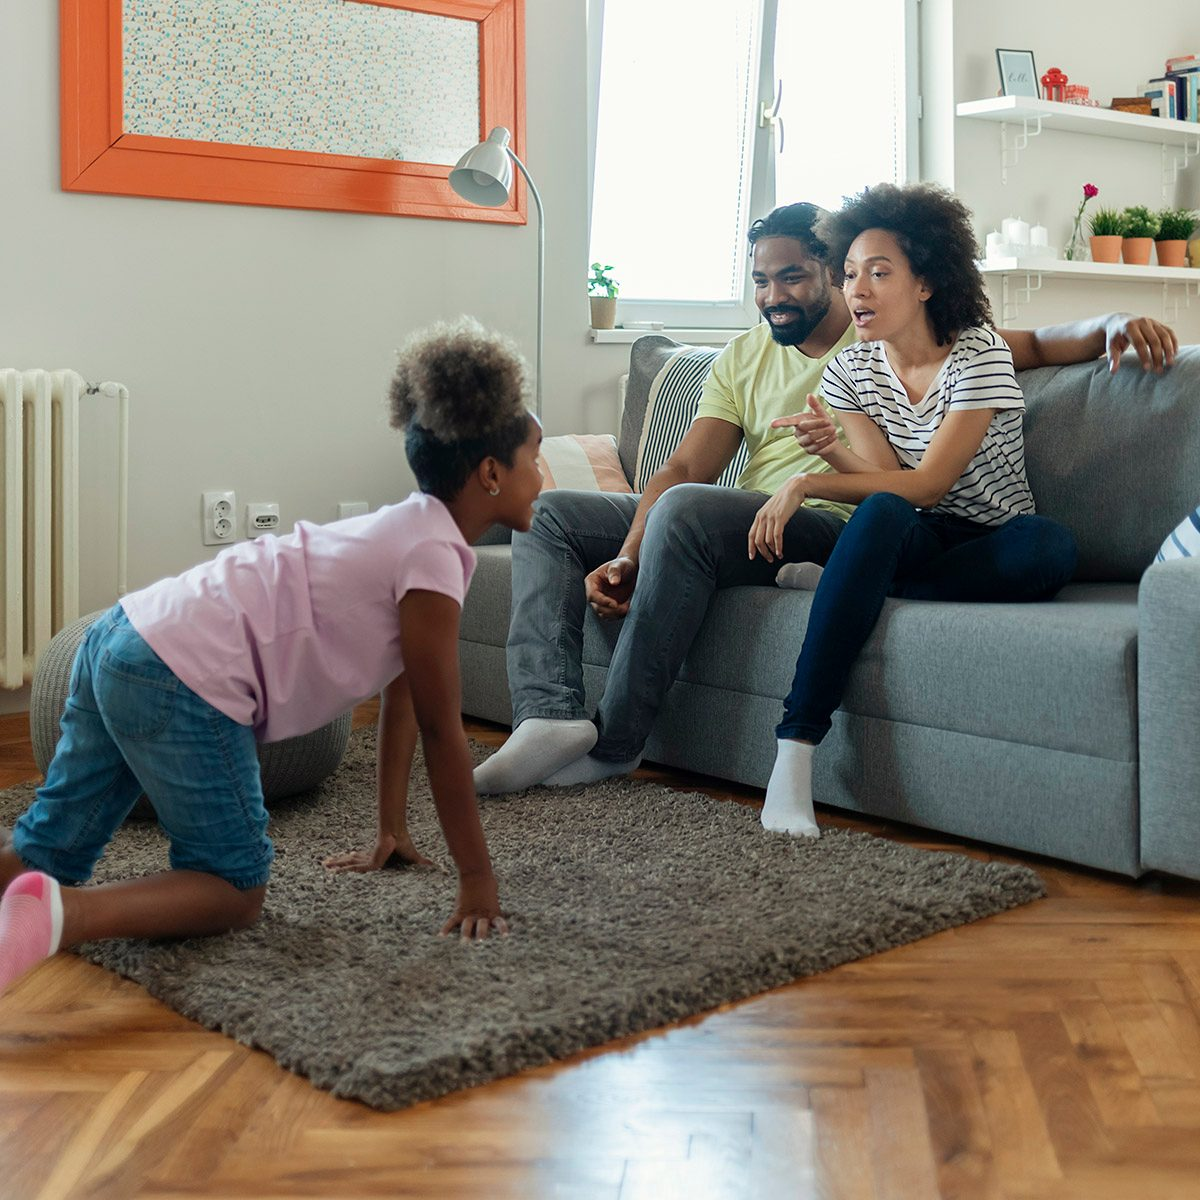 Young Parents and Their Daughter Are Having Fun and Playing Charades Together. Portrait of Happy Family Having Fun at Leisure. Entertainment Concept.